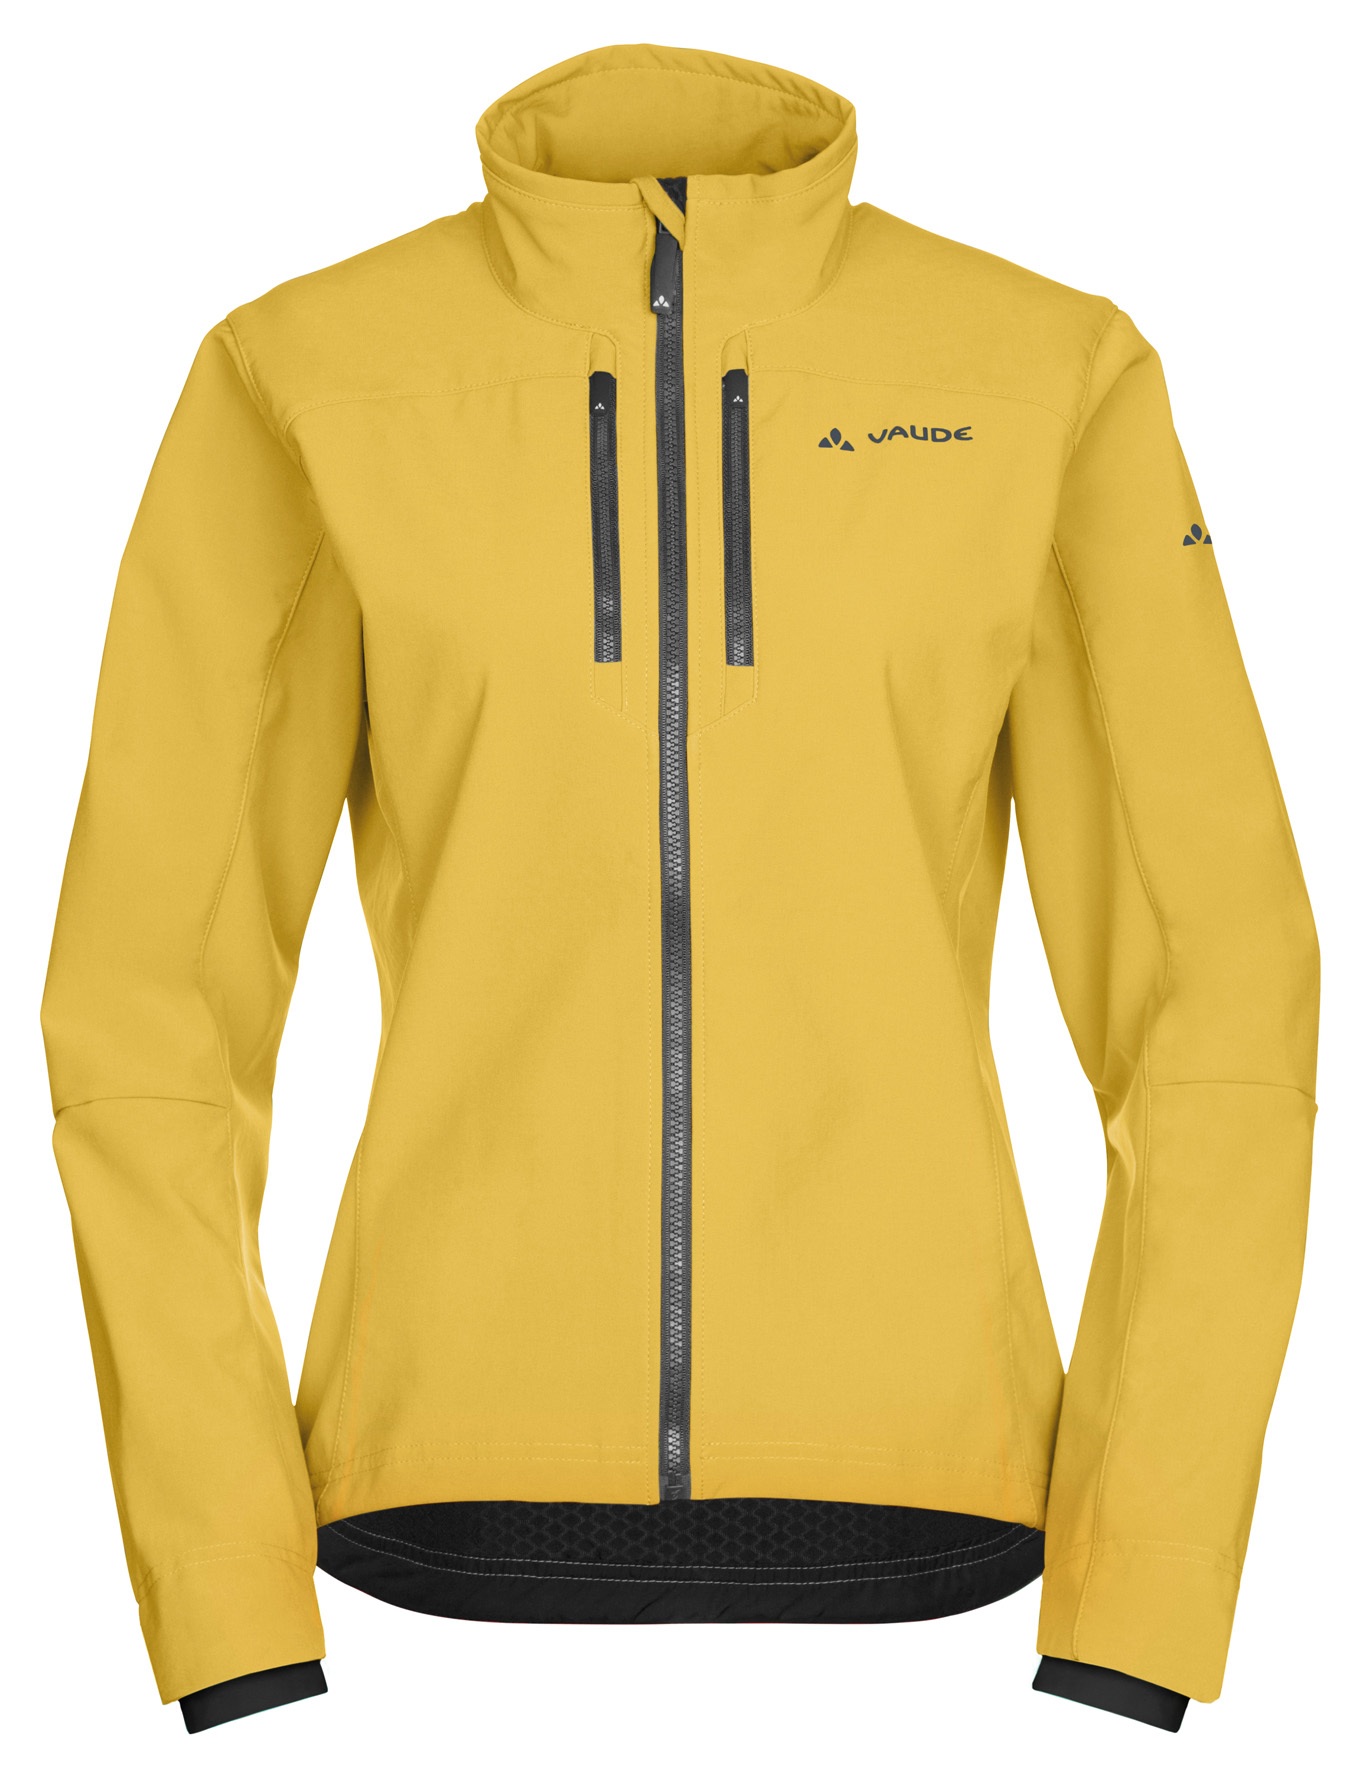 Women´s Qimsa Softshell Jacket golddust Größe 44 - Women´s Qimsa Softshell Jacket golddust Größe 44